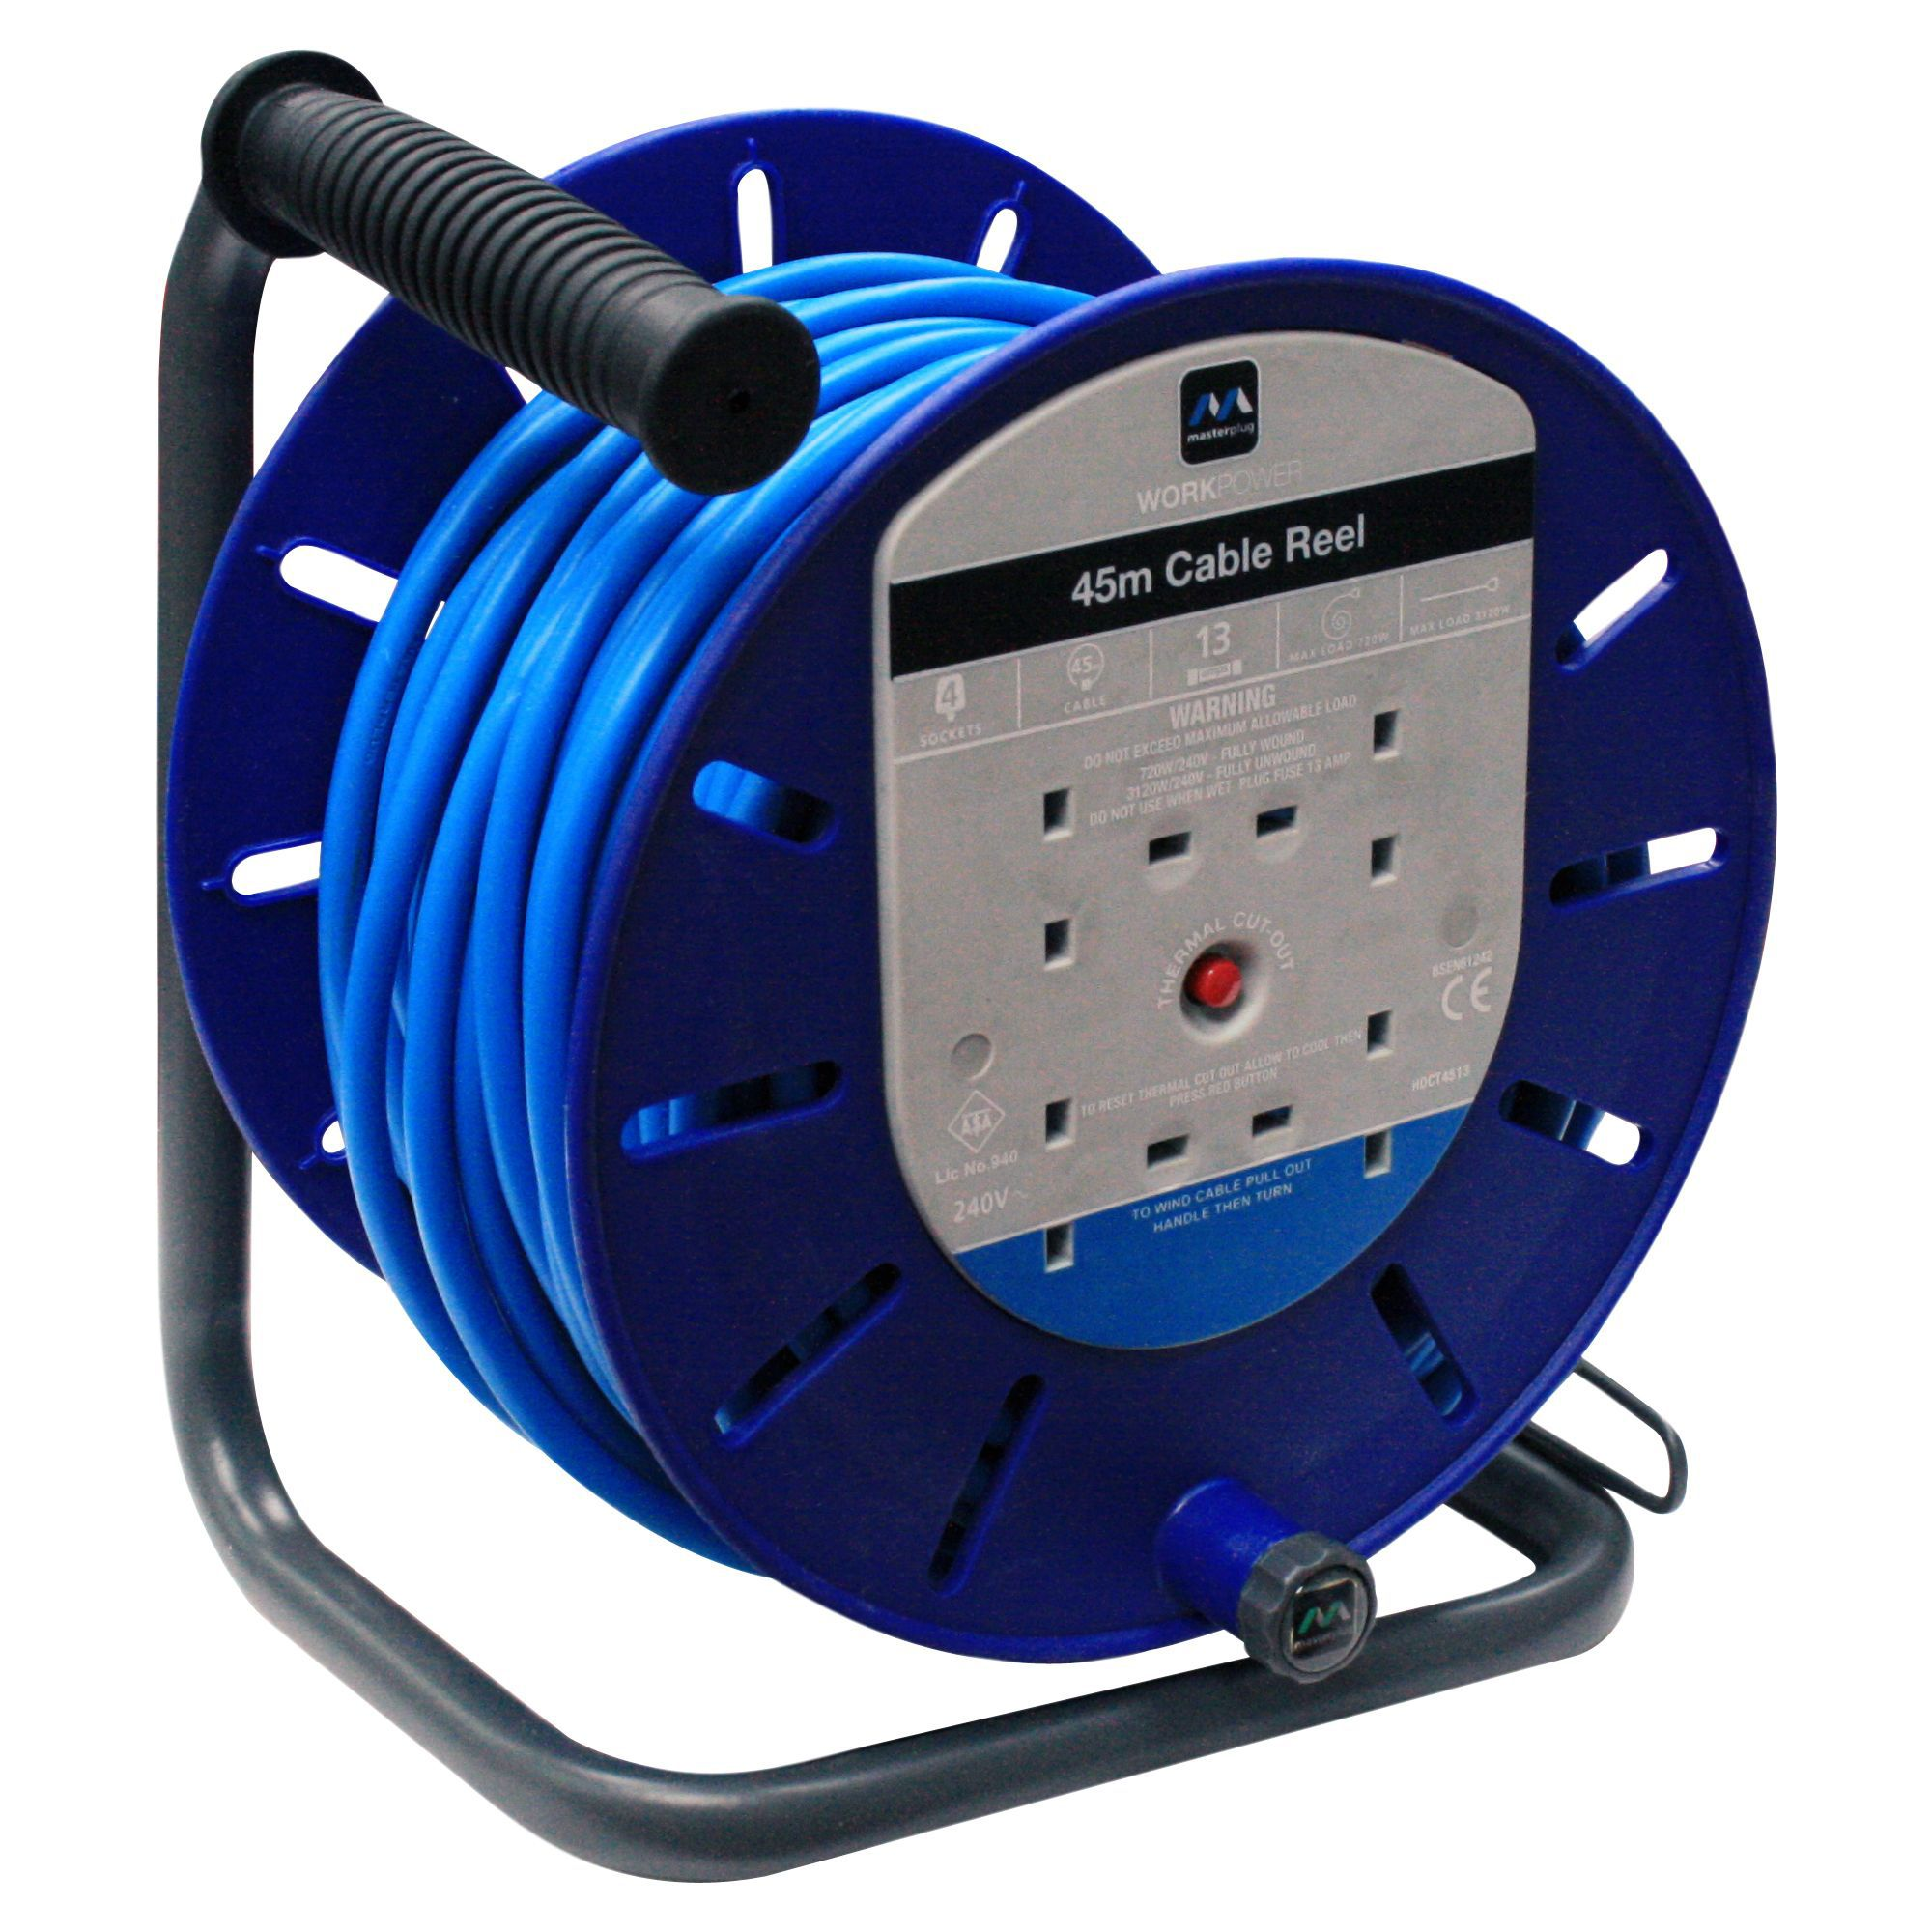 Masterplug 4 Socket 13a Cable Reel L 45m Departments